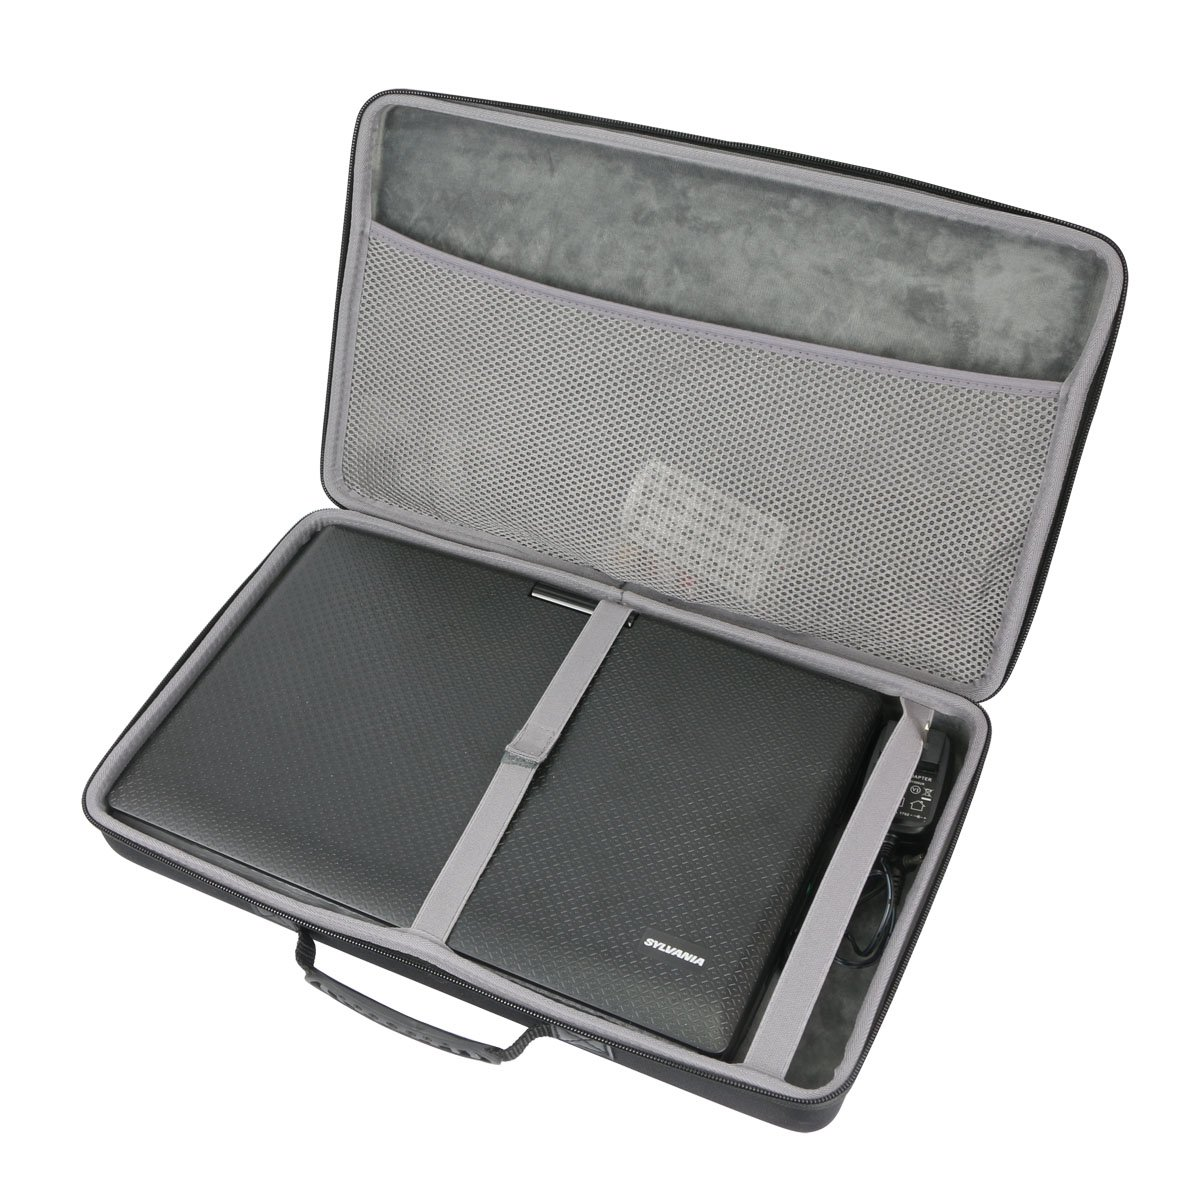 Hard Travel Case for Sylvania 13.3-Inch Swivel Screen Portable DVD Player by co2CREA